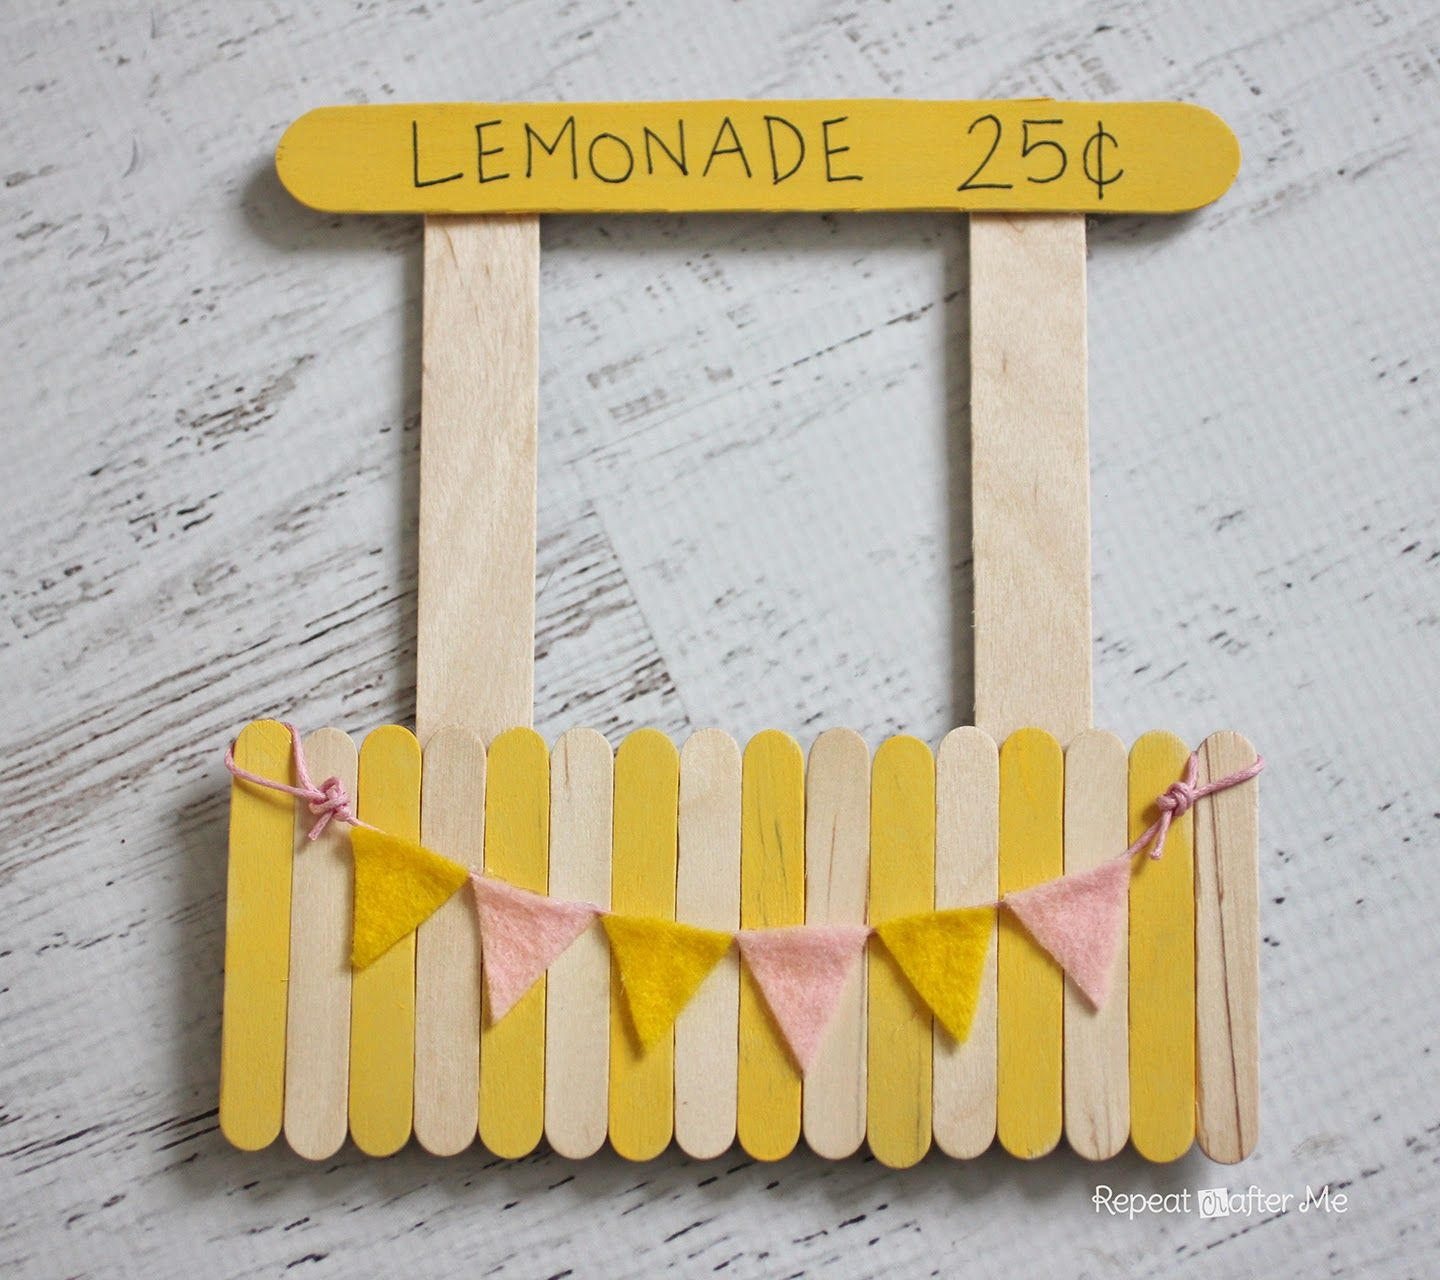 Lemonade stand magnetic picture frame repeat crafter me lemonade stand magnetic picture frame jeuxipadfo Gallery